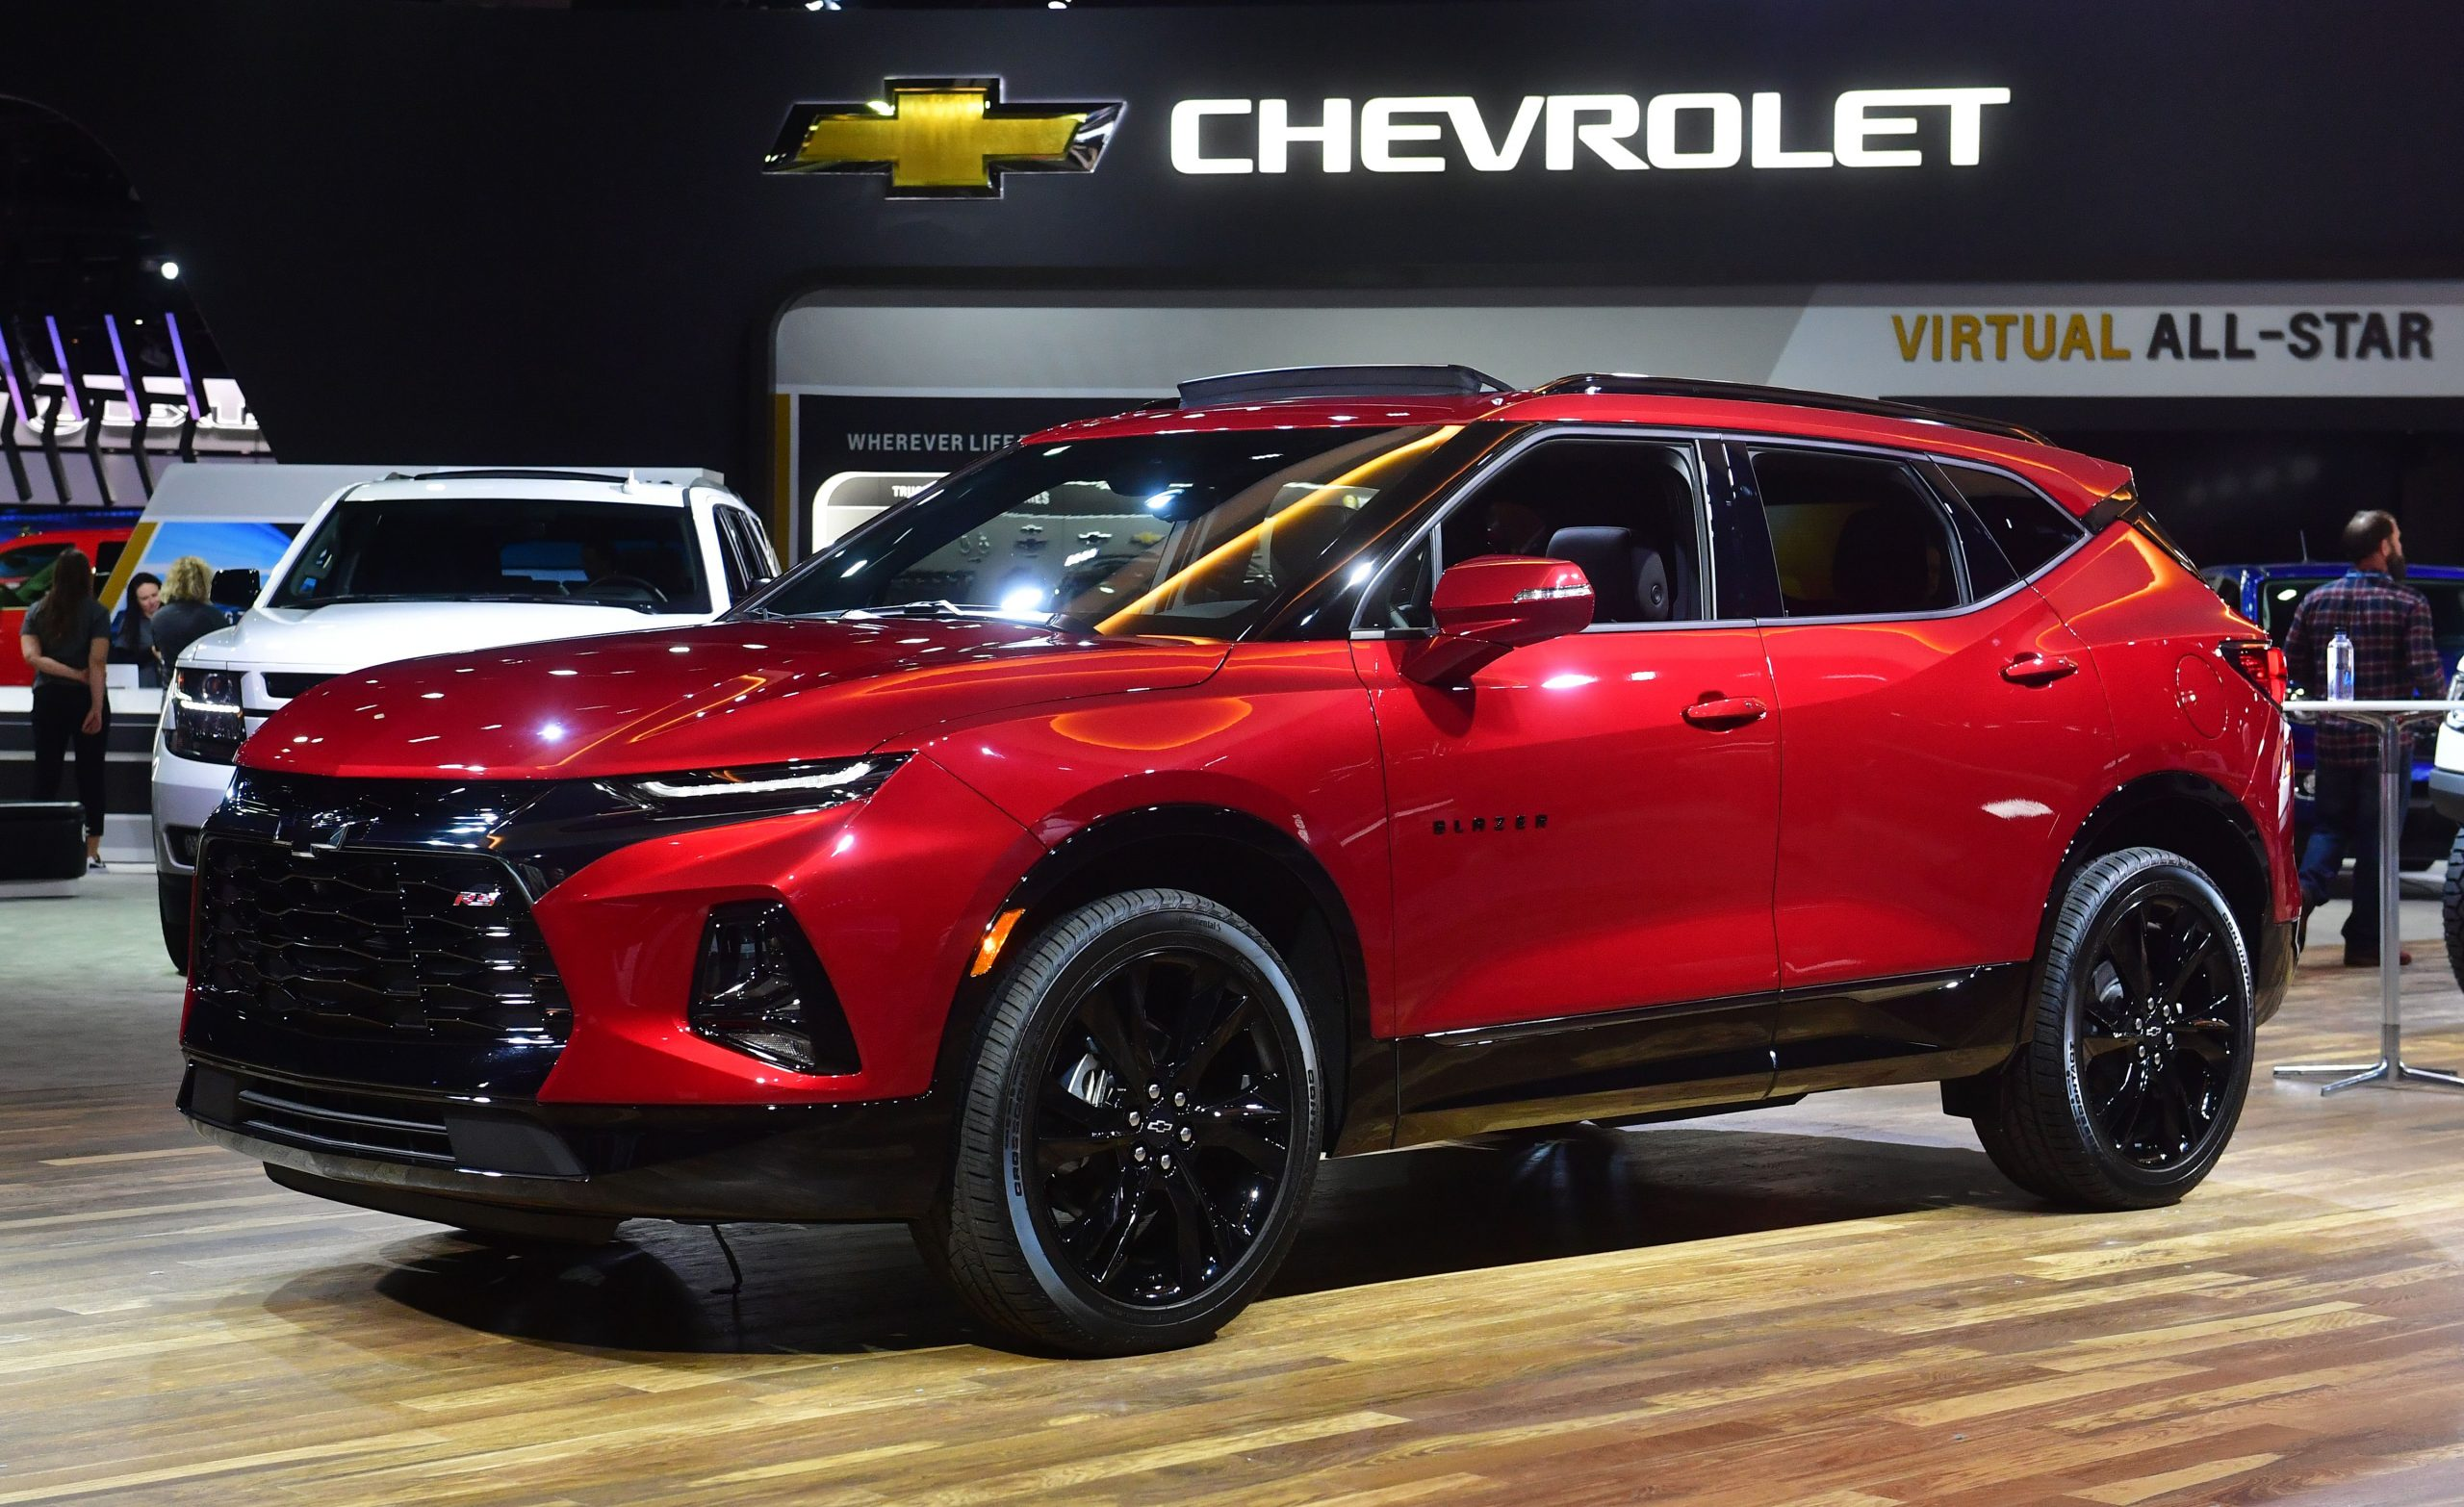 a red Chevy Blazer on display at an auto show